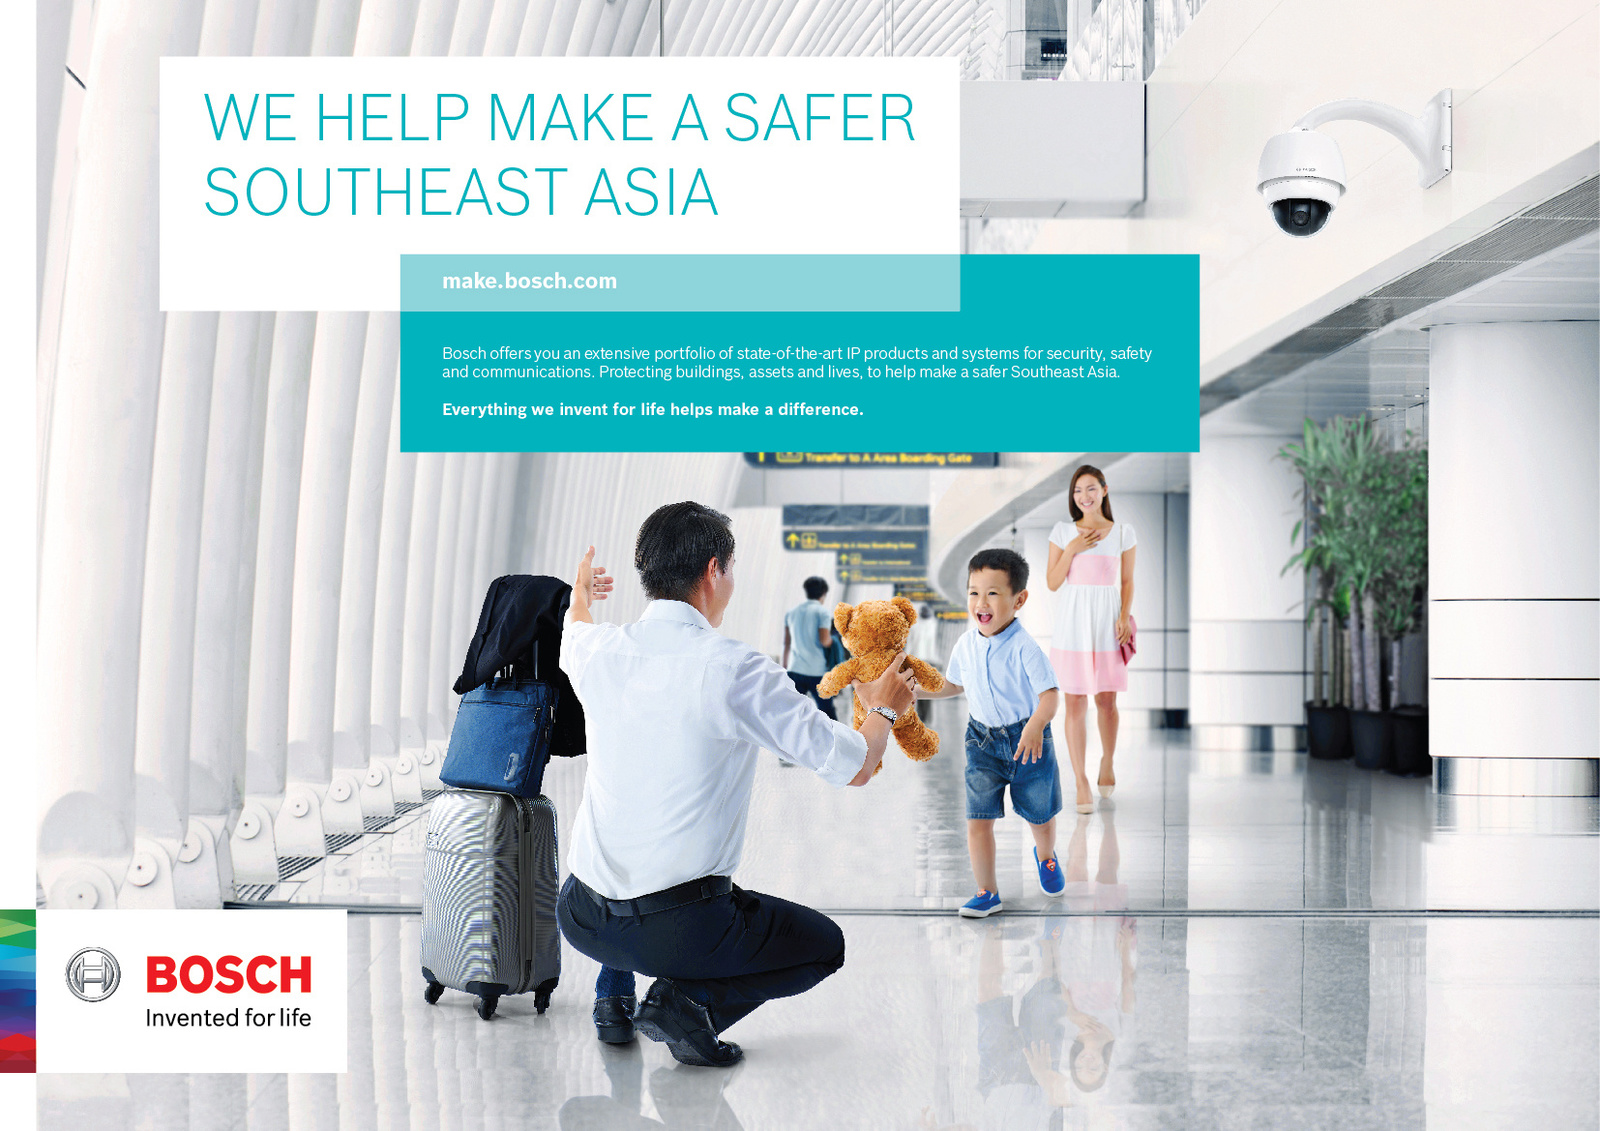 Key-Visual of the branding campaign in Southeast Asia